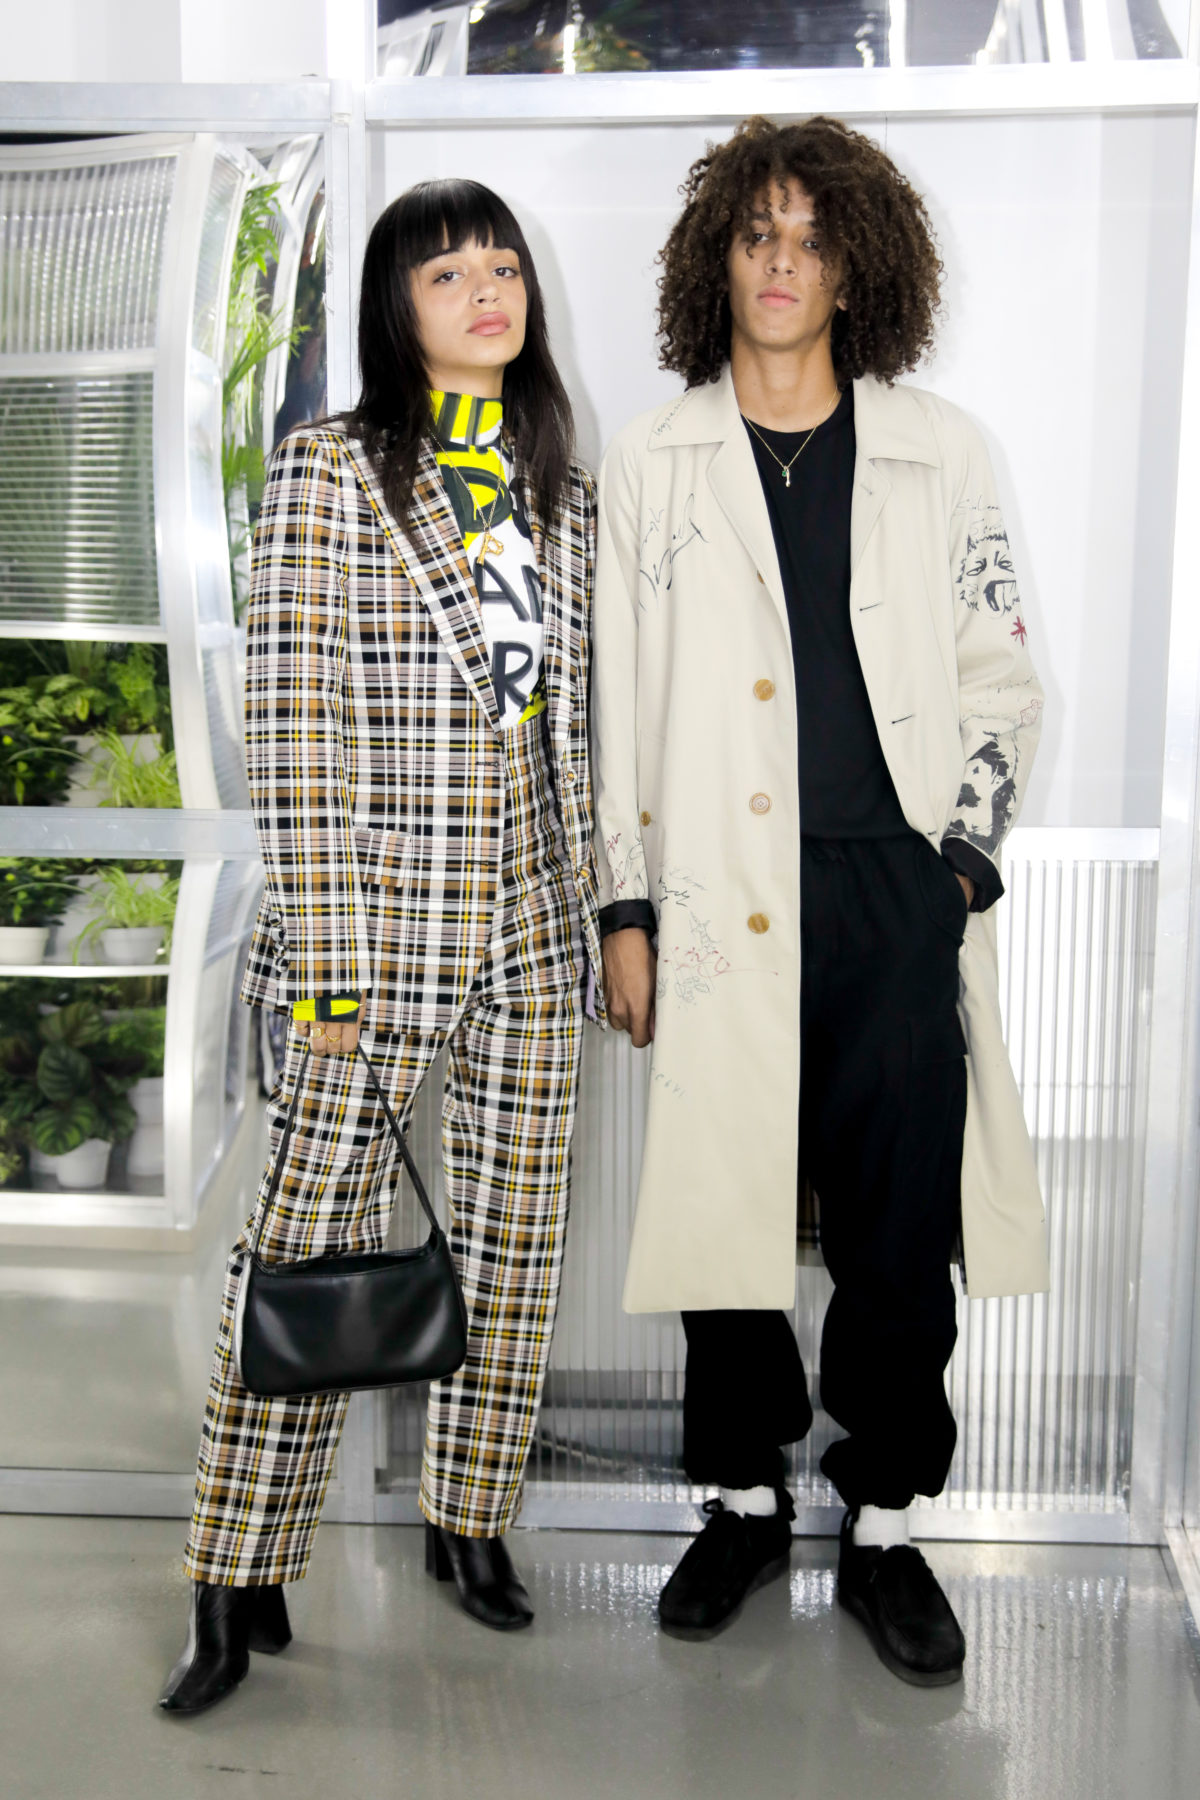 Parvanne Barret & Wathek Allal at the opening event of The Burberry Conservatory in Dubai